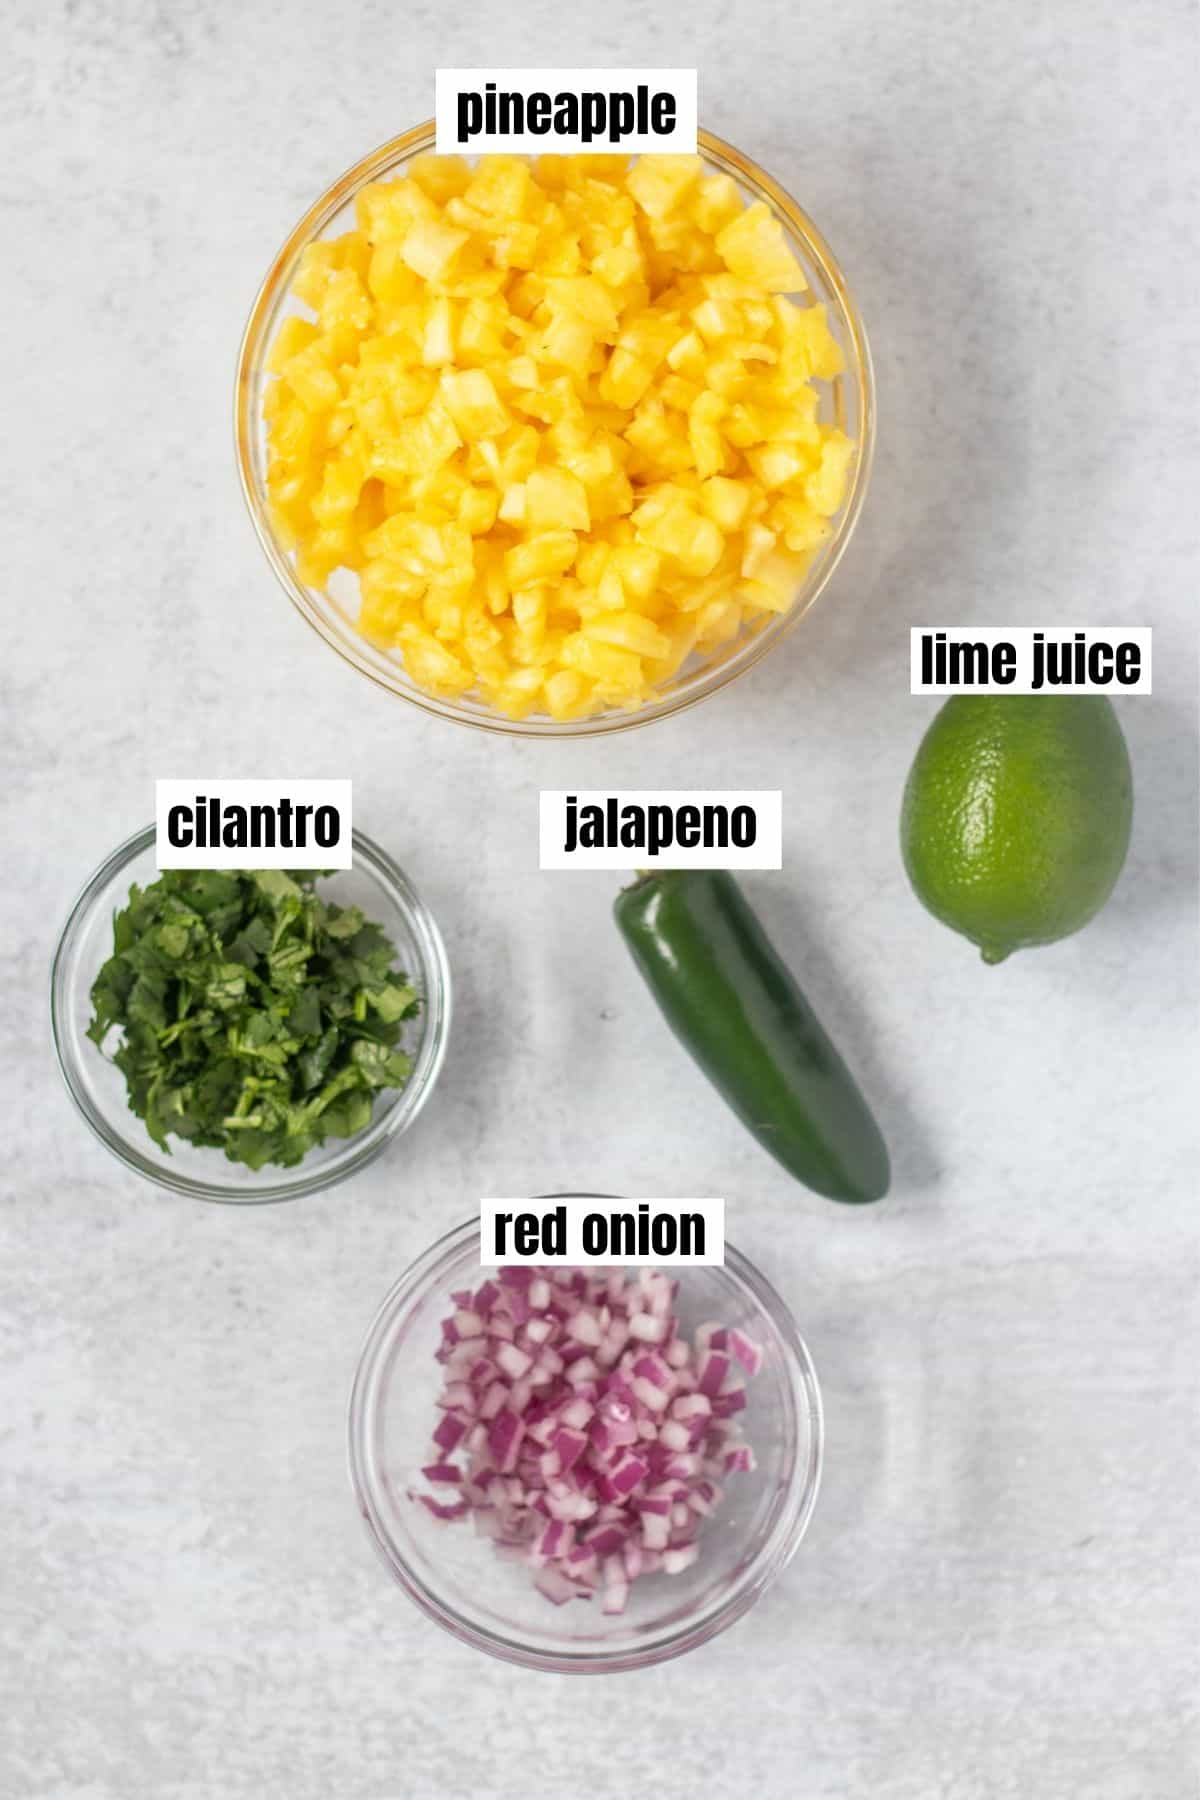 diced pineapple, chopped cilantro, jalapeno, lime, chopped red onion